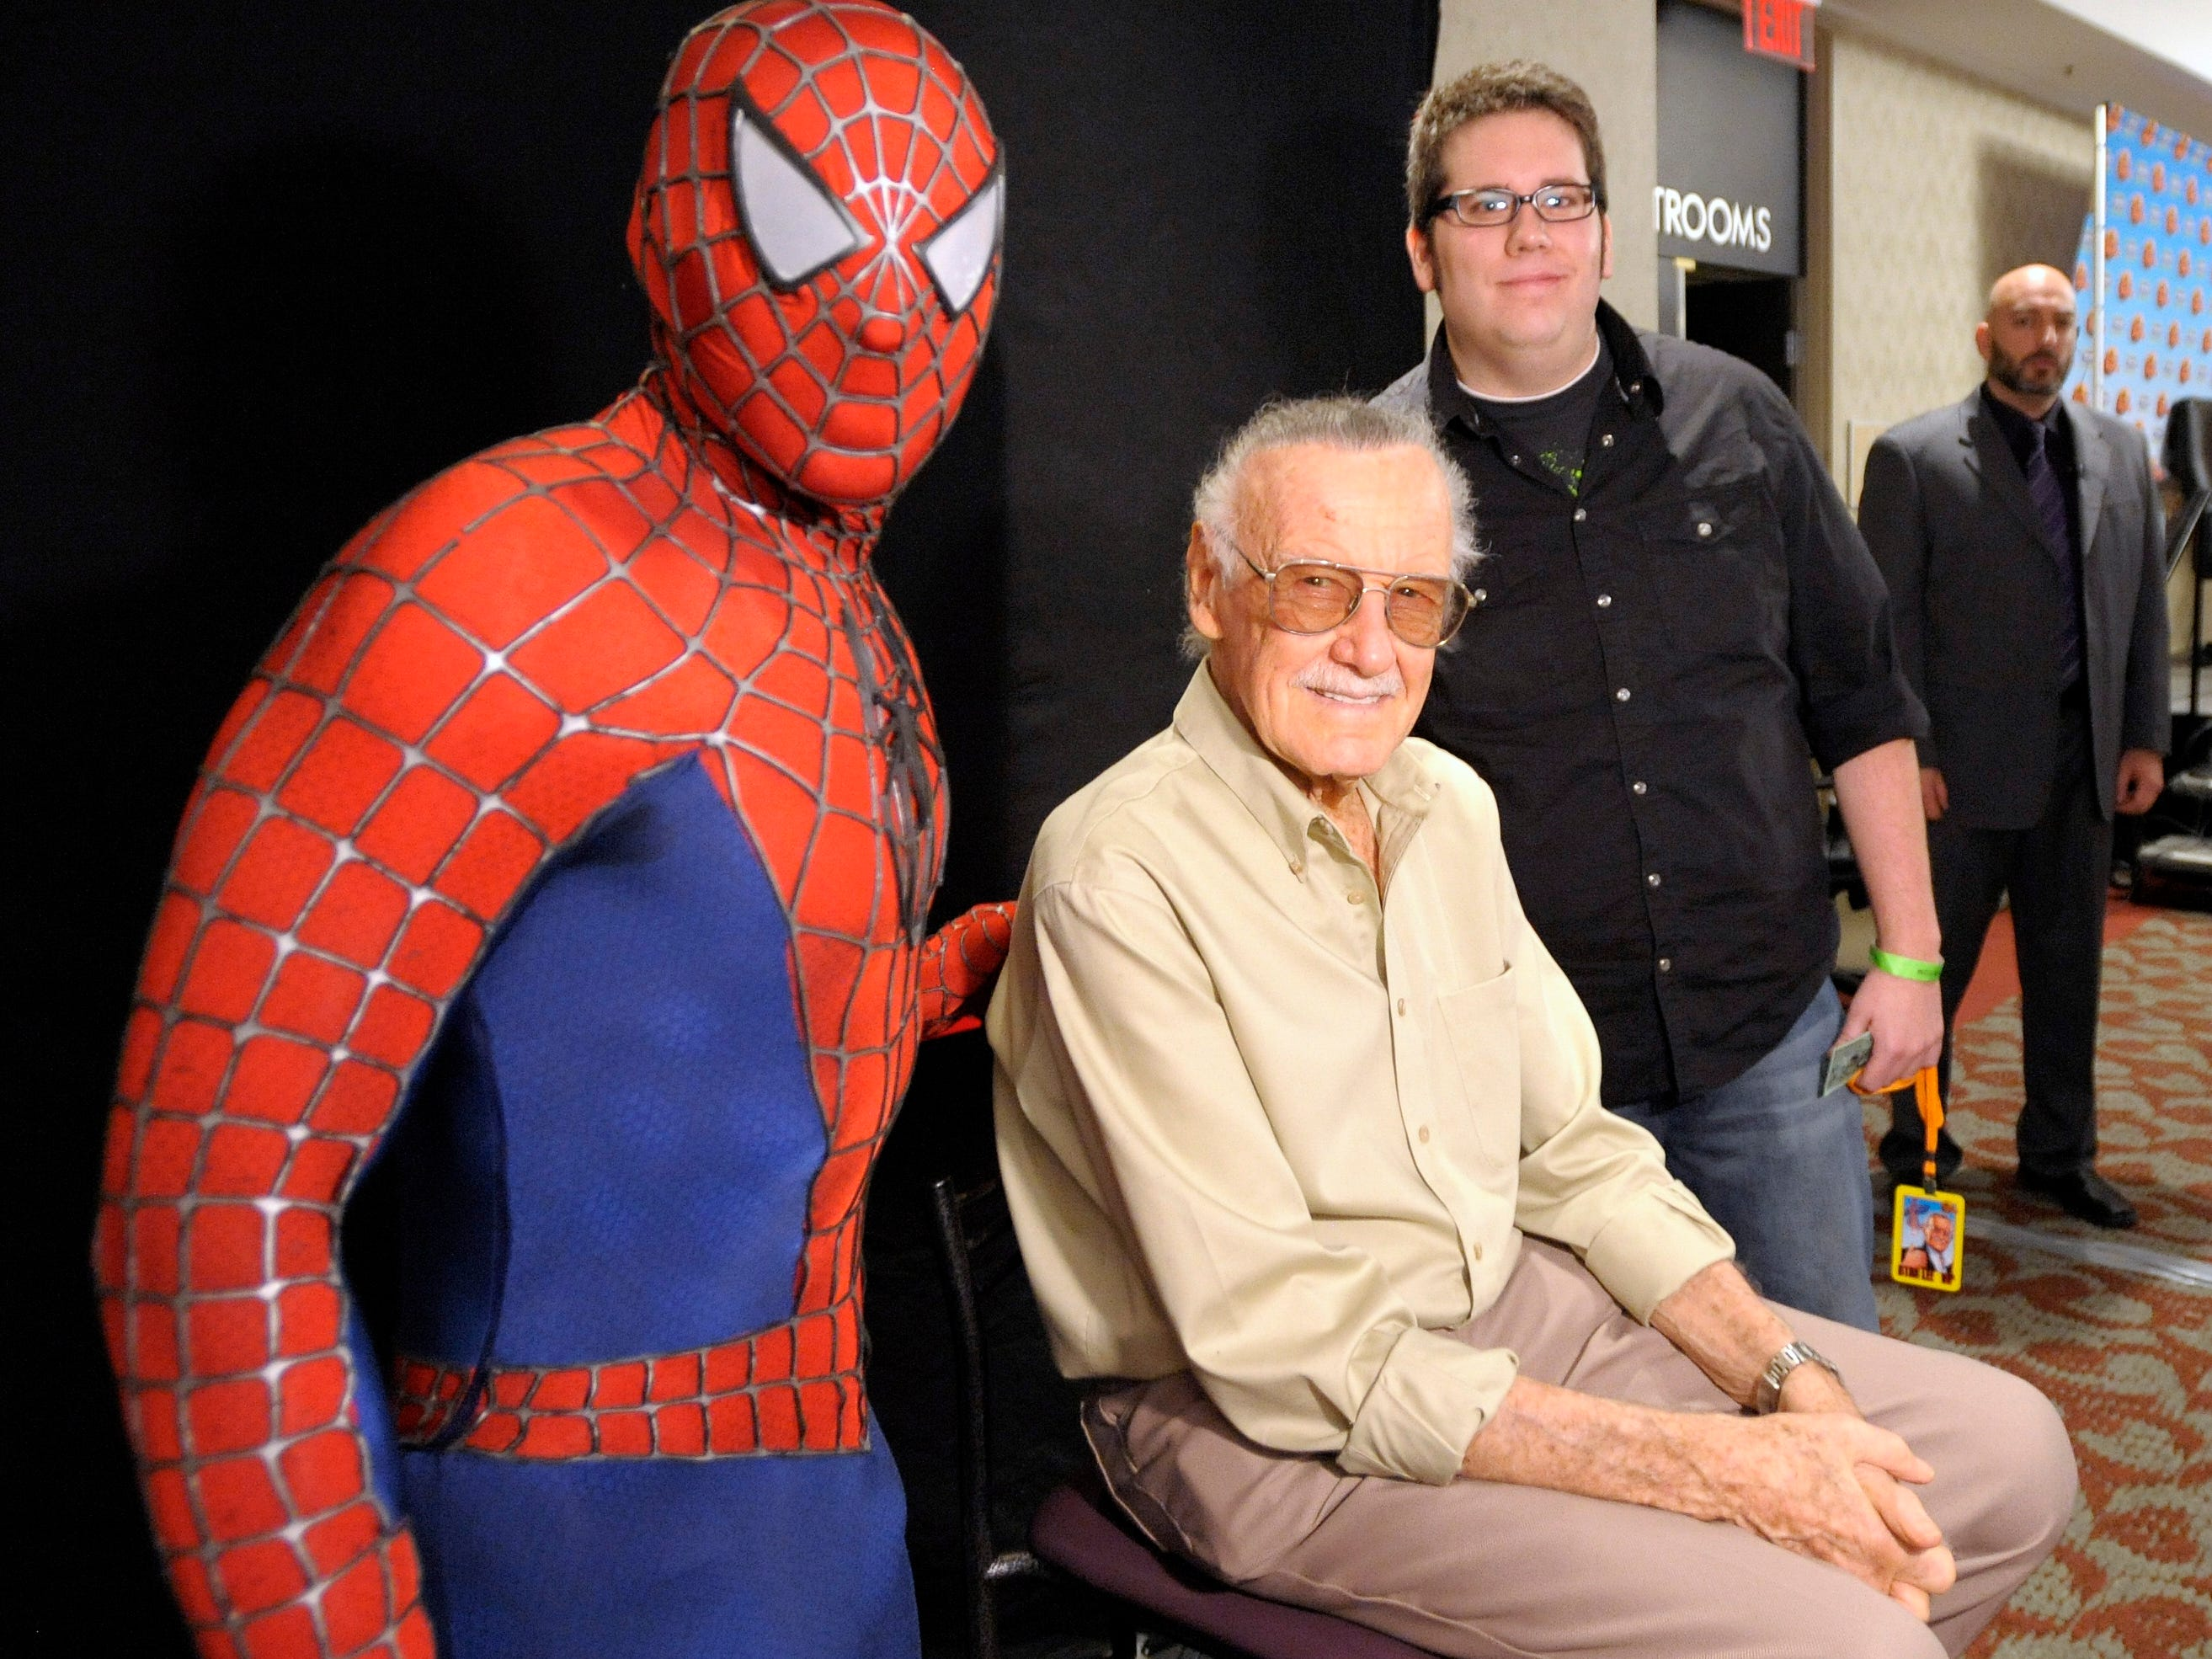 Nik Kaldobsky, left, of Livonia, wears his Spider-Man costume as he and friend Garrett Knack, right,  of Novi, pose with Spider-Man creator Stan Lee, at the 1st Annual/4th Anniversary New Detroit Fanfare 2010 comic book convention at the Dearborn Hyatt Regency Hotel, October 30, 2010.